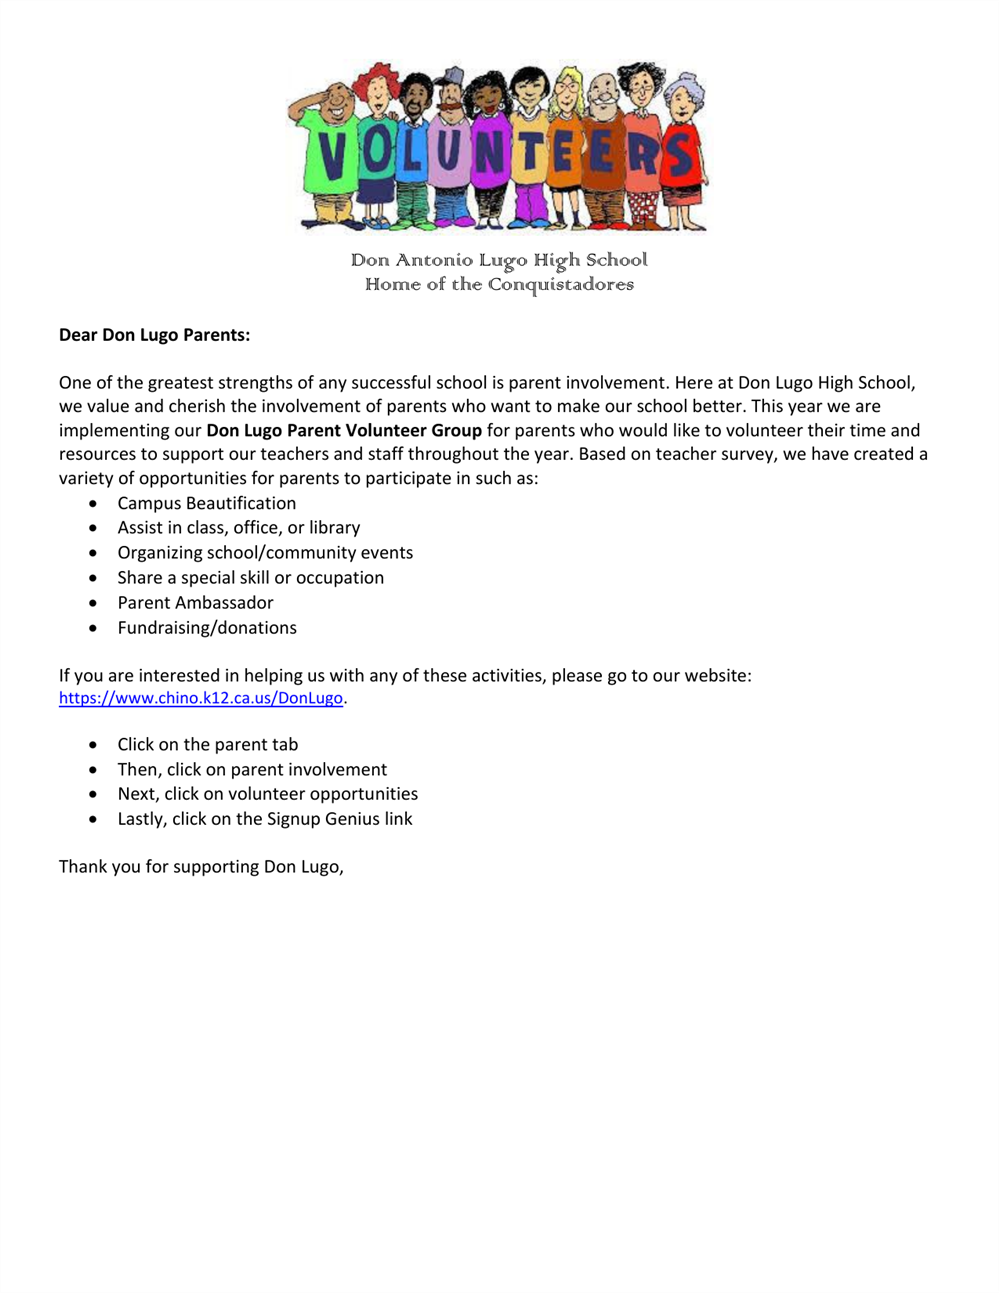 Don Lugo Parent Volunteer Group